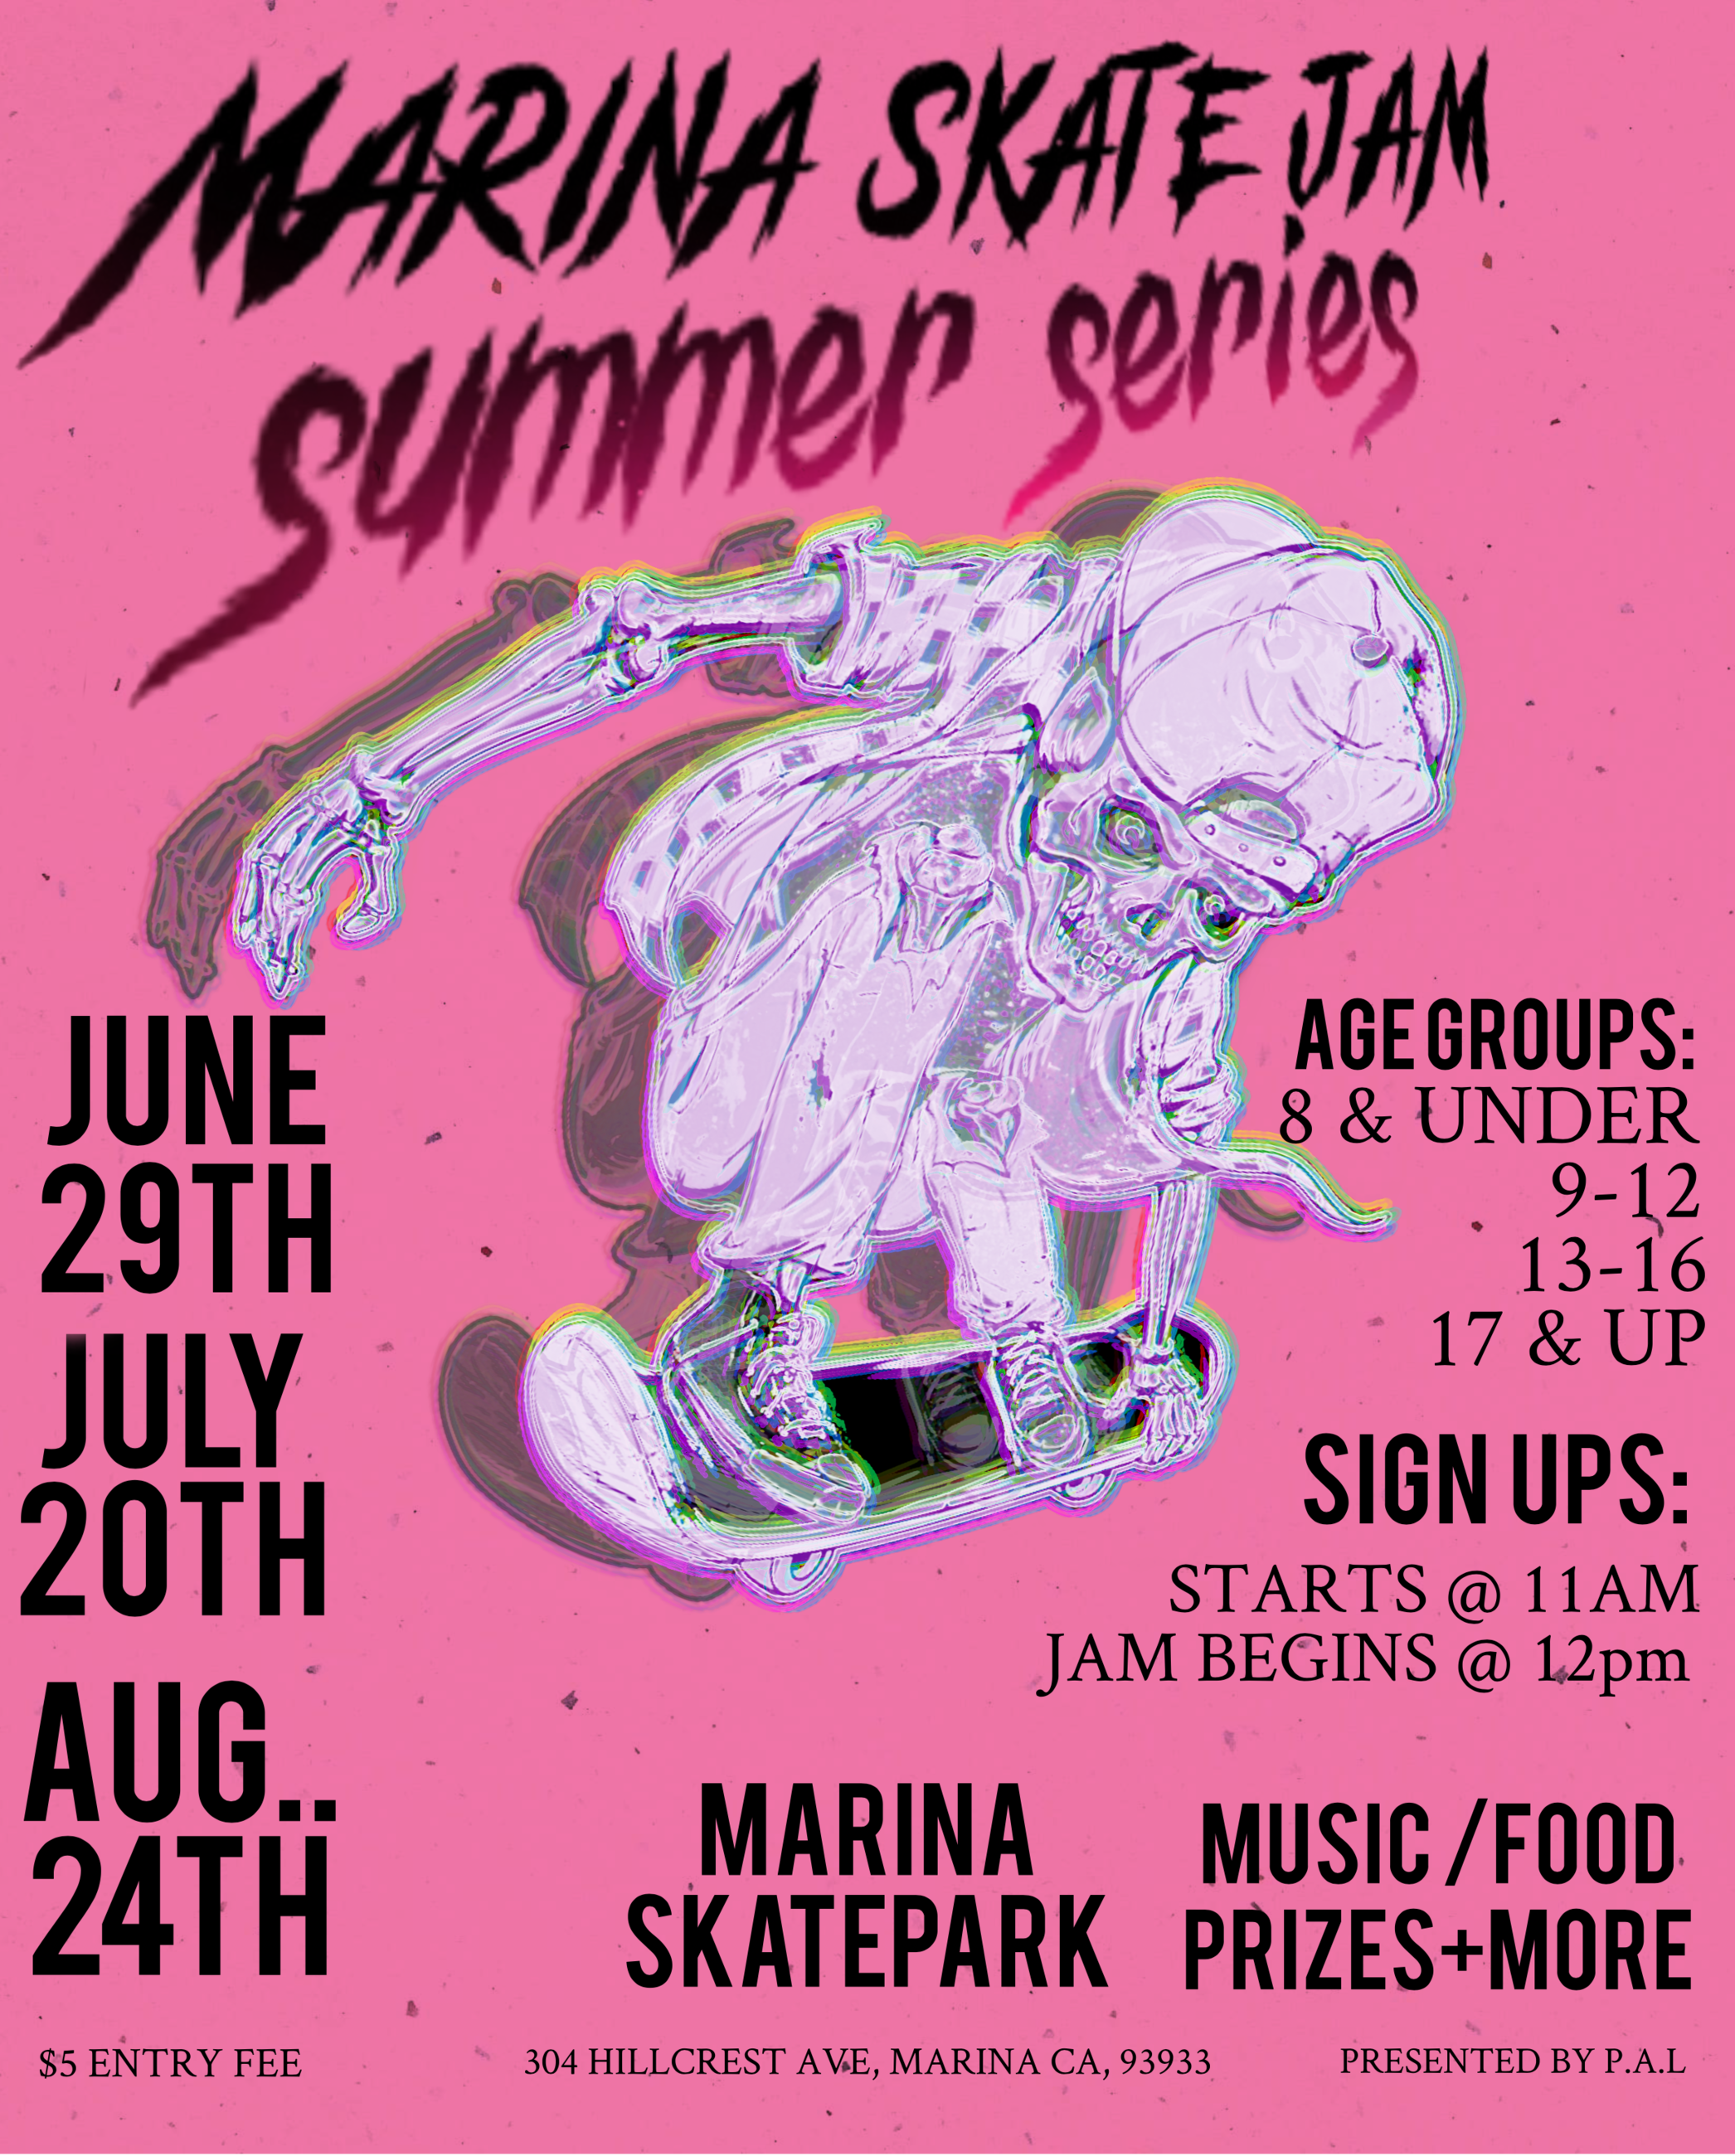 Skate Jams Summer Series Flyer